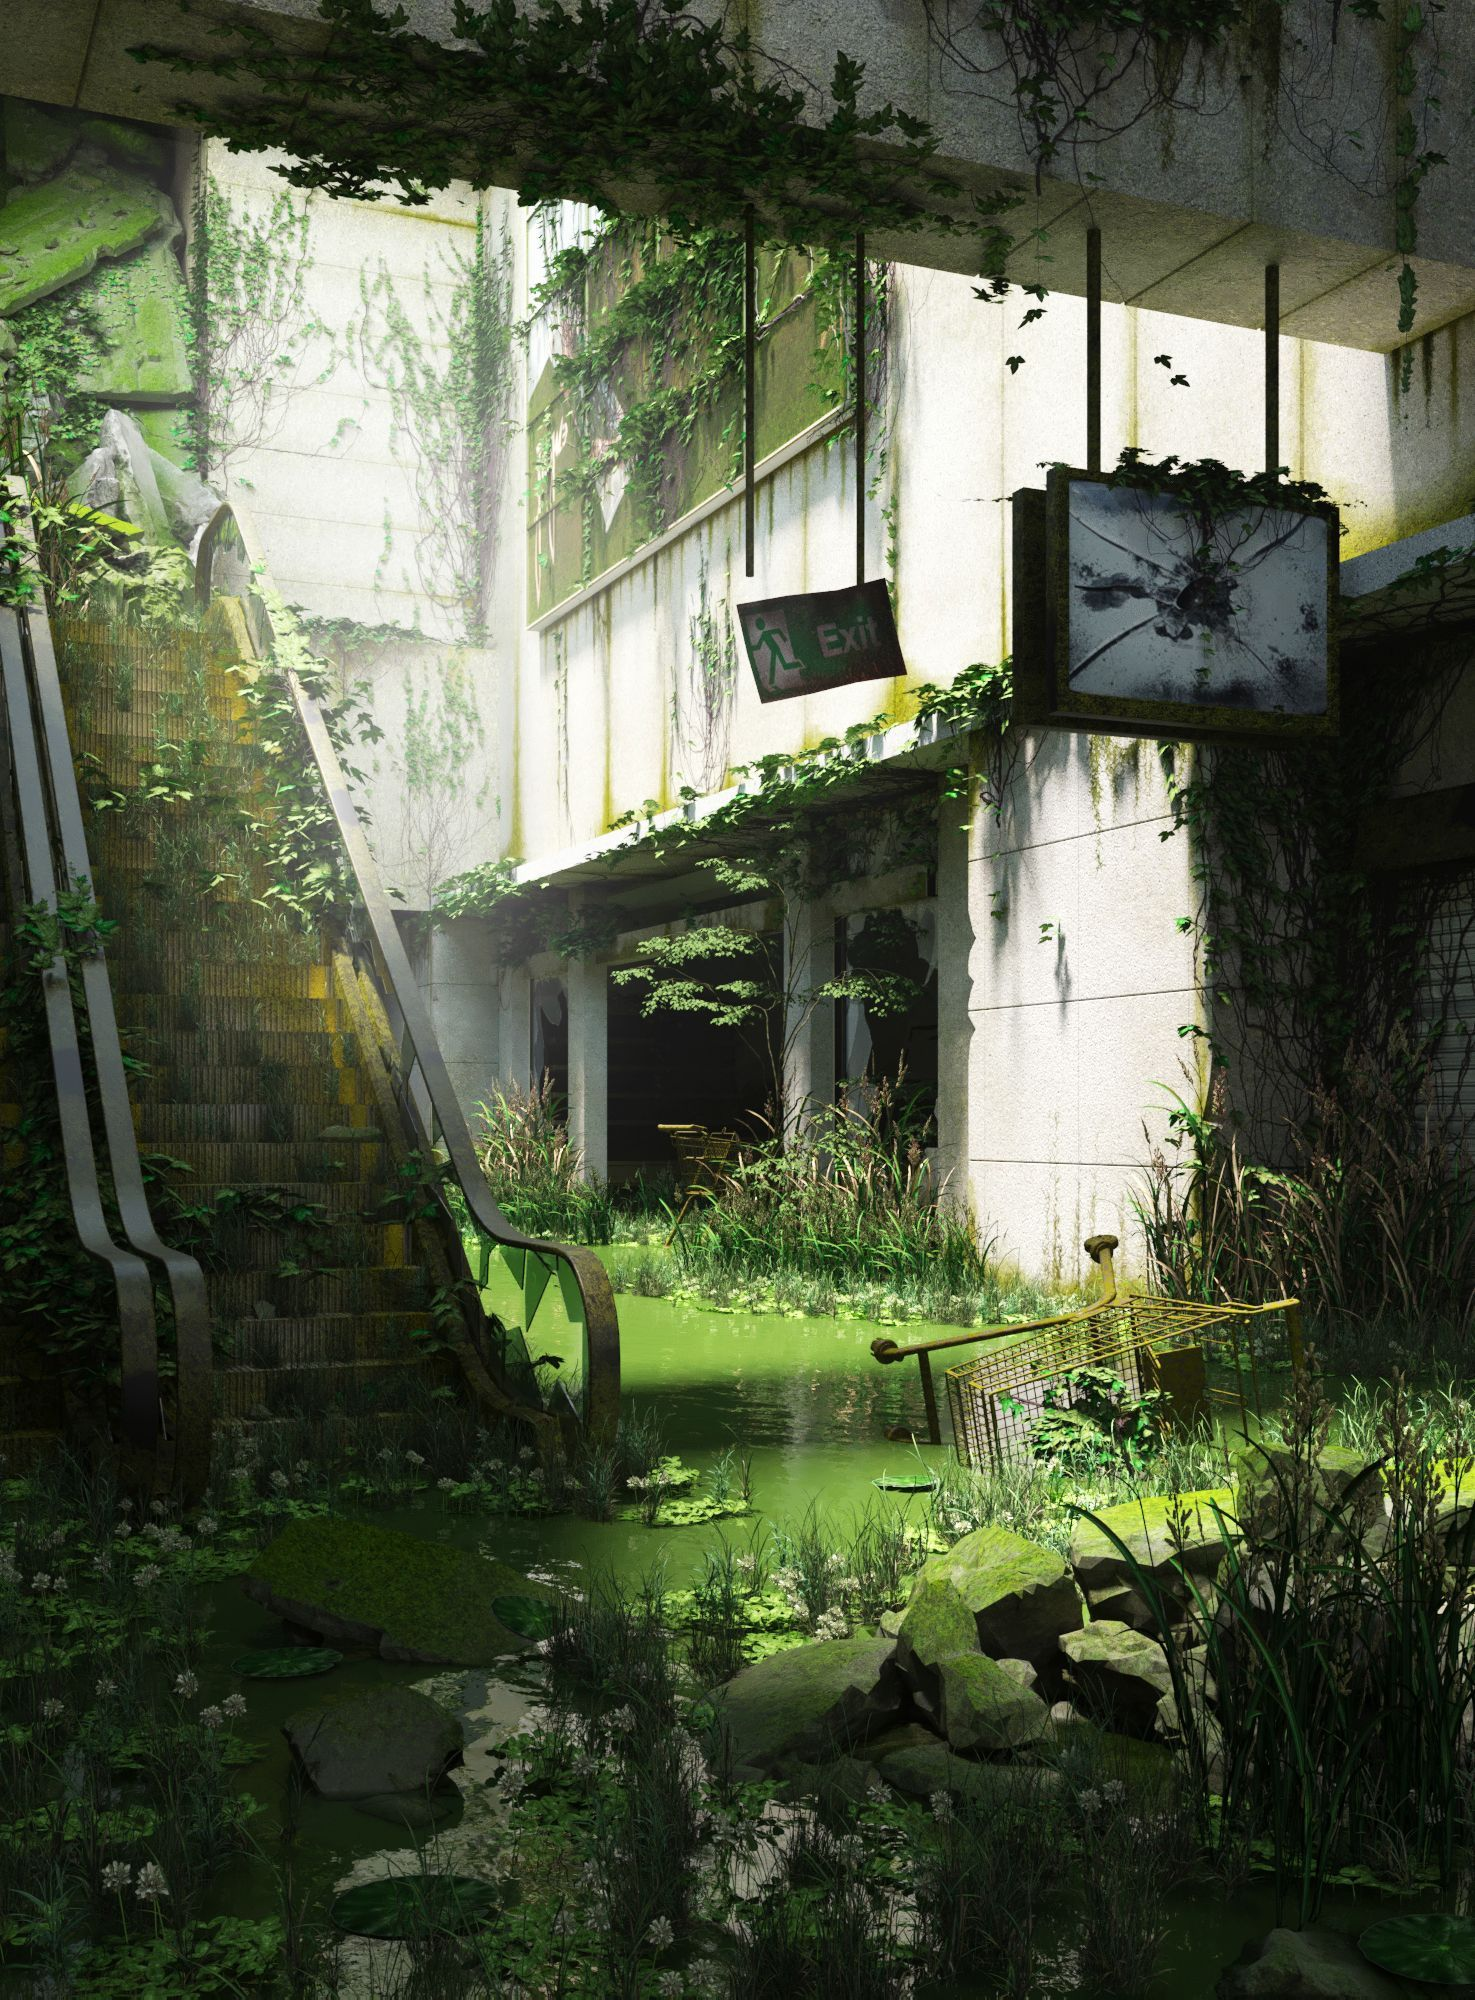 nature taking over abandoned place #abandonedplaces nature taking over abandoned place